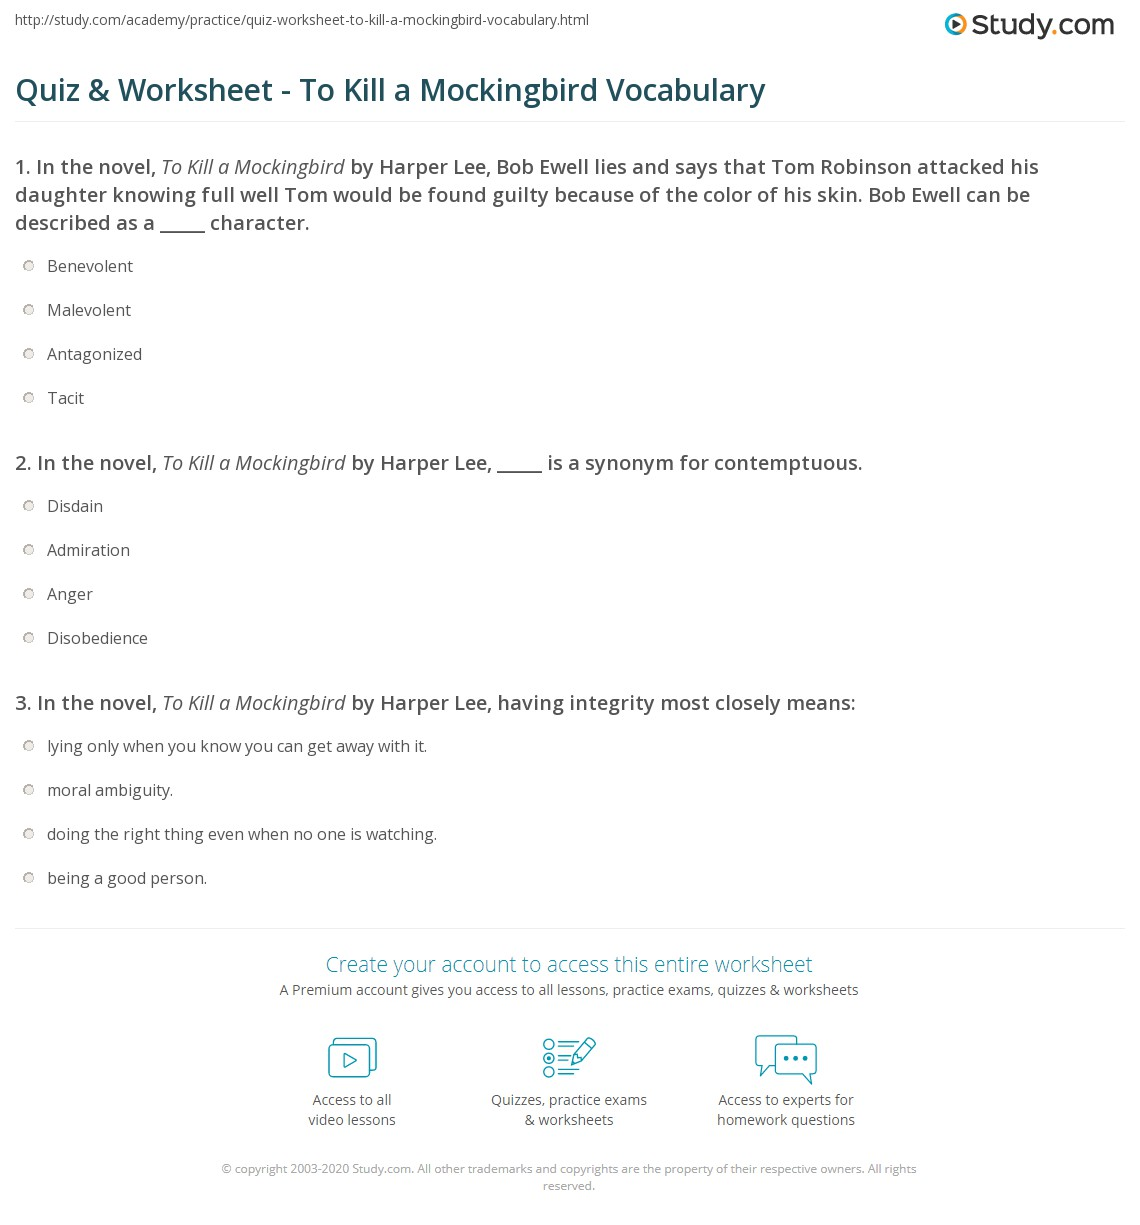 {Quiz Worksheet To Kill a Mockingbird Vocabulary – To Kill a Mockingbird Vocabulary Worksheet